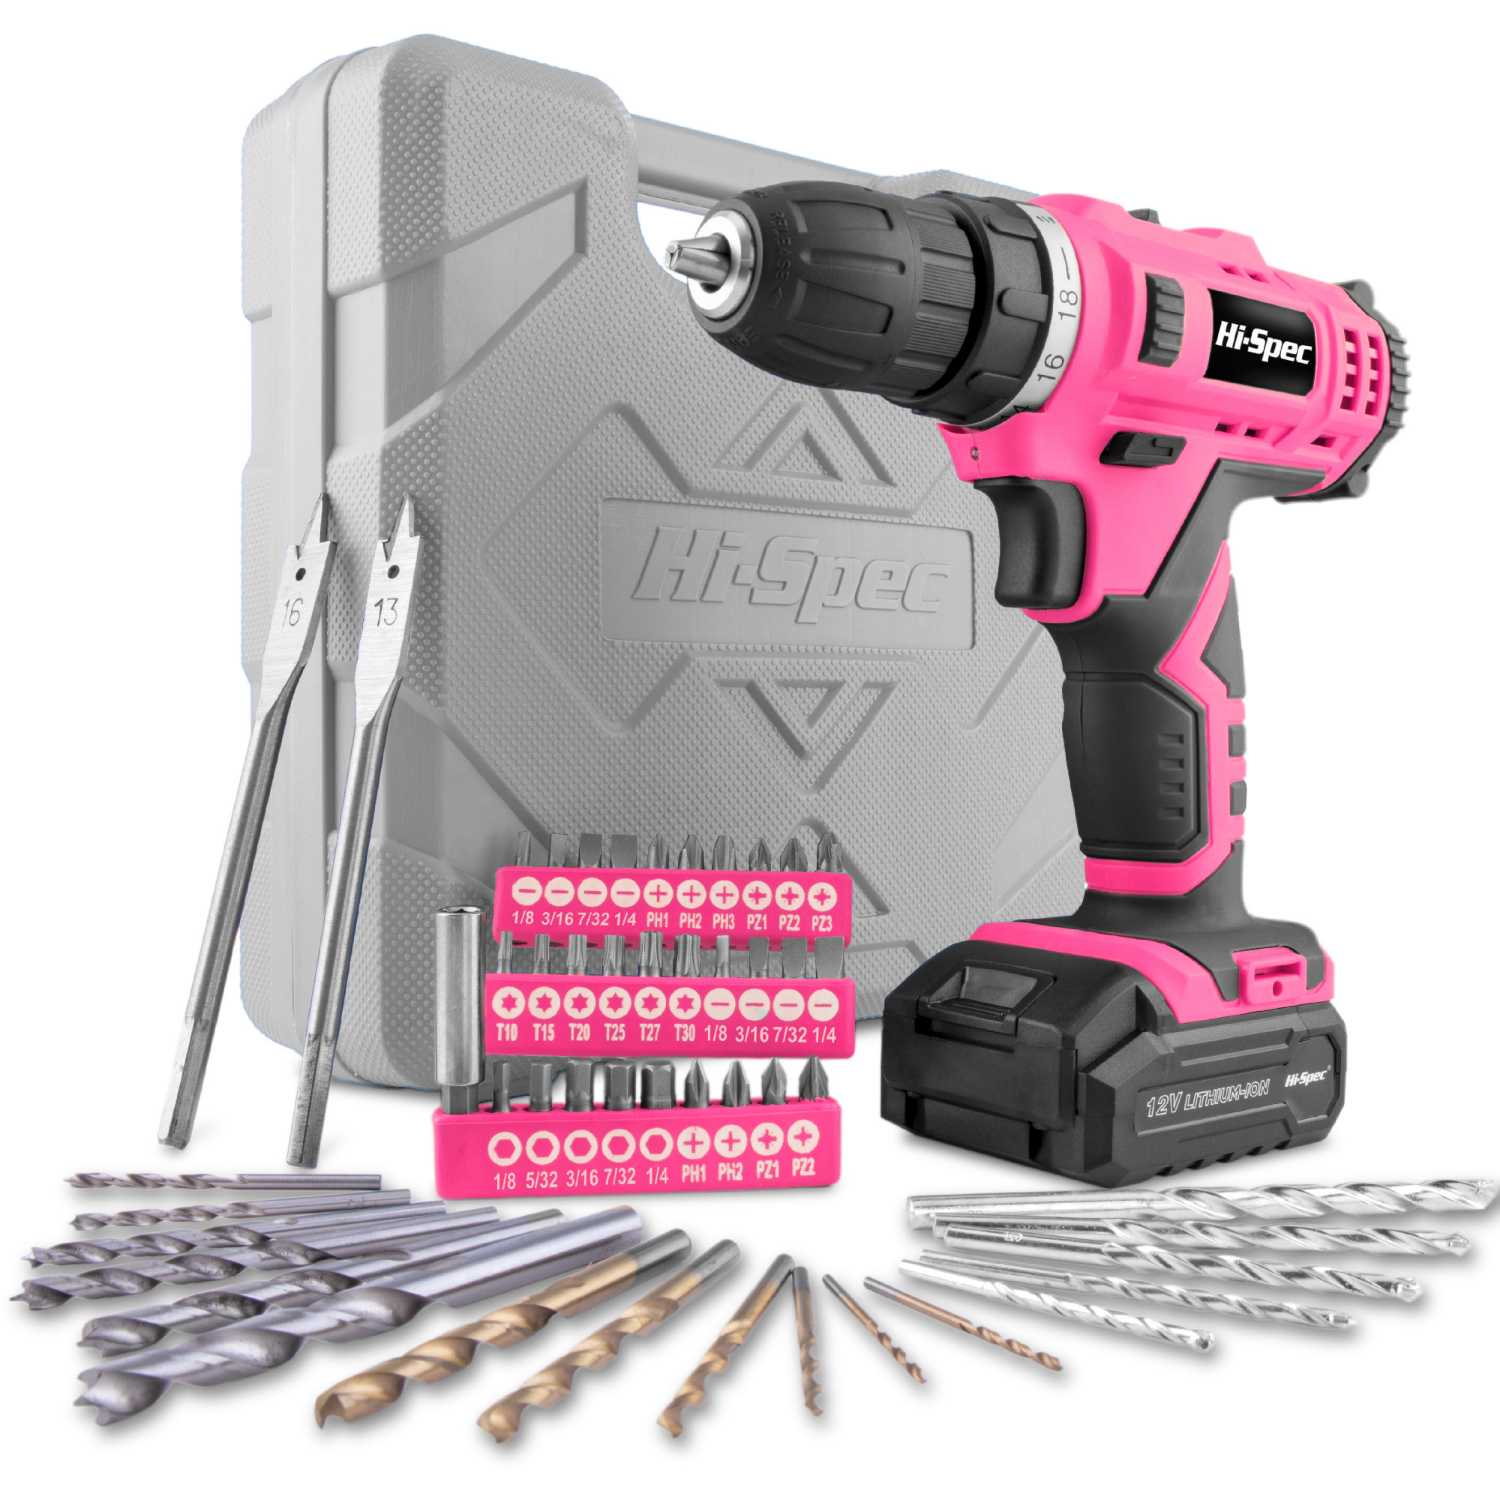 Hi-Spec 50pc 12V 1300mAh Li-ion Cordless Screwdriver Drill Driver Electric Screwdriver Pink DIY Power Tools for Gril Lady Women